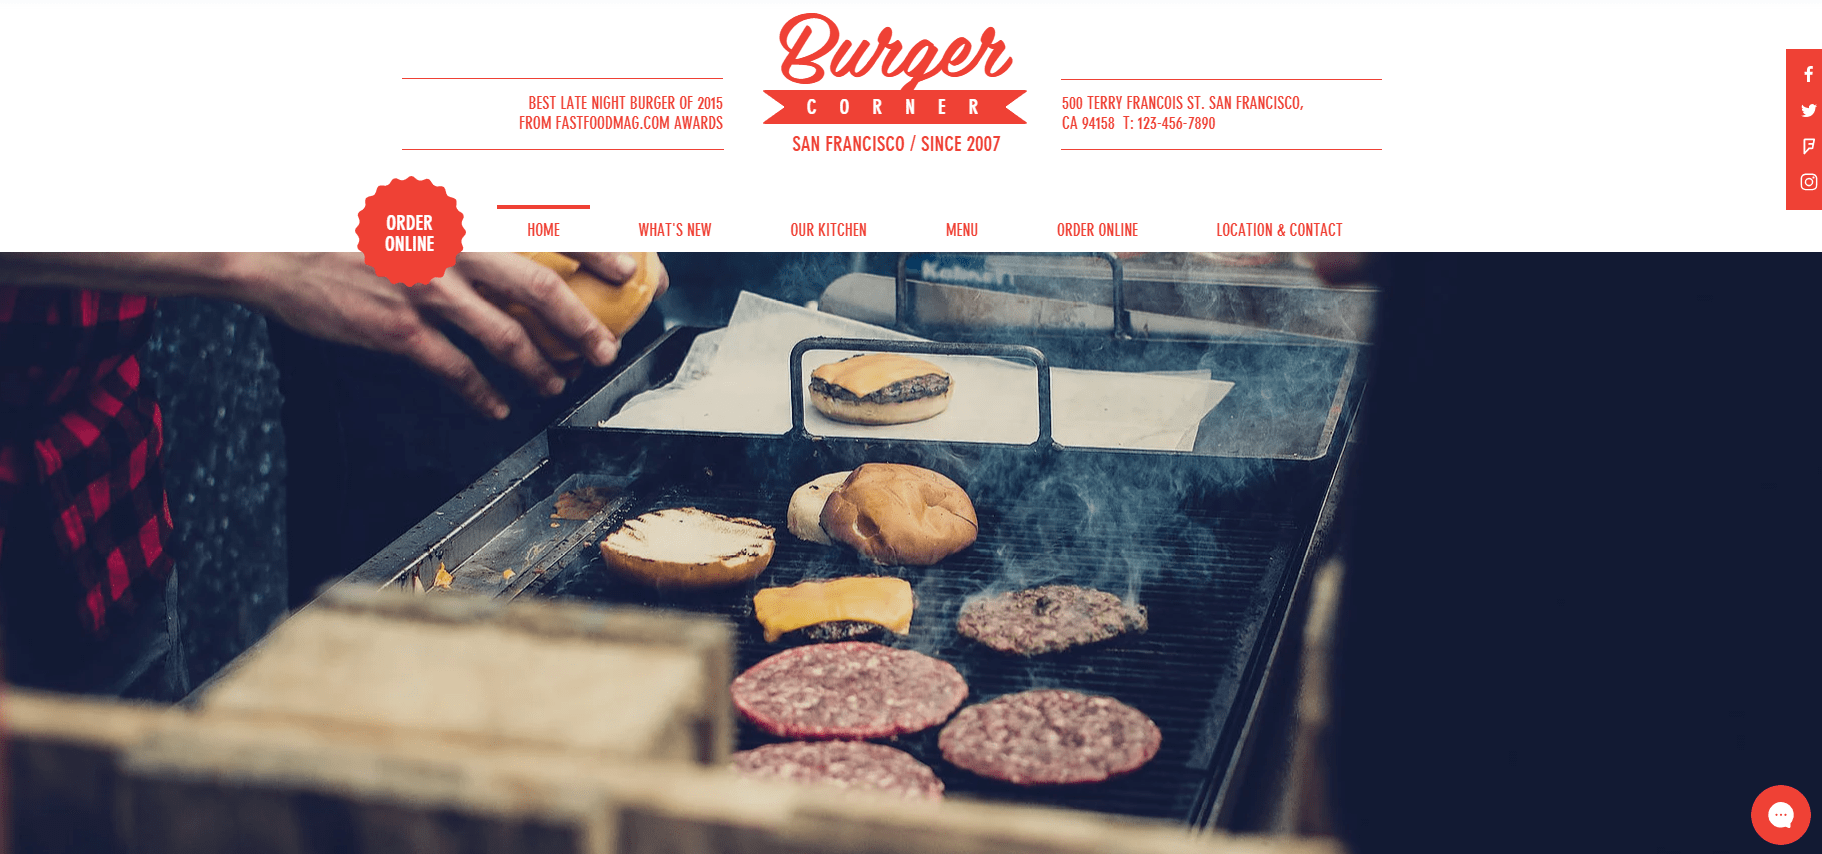 10 Best Wix Templates for Restaurants to Make Your Food Stand Out